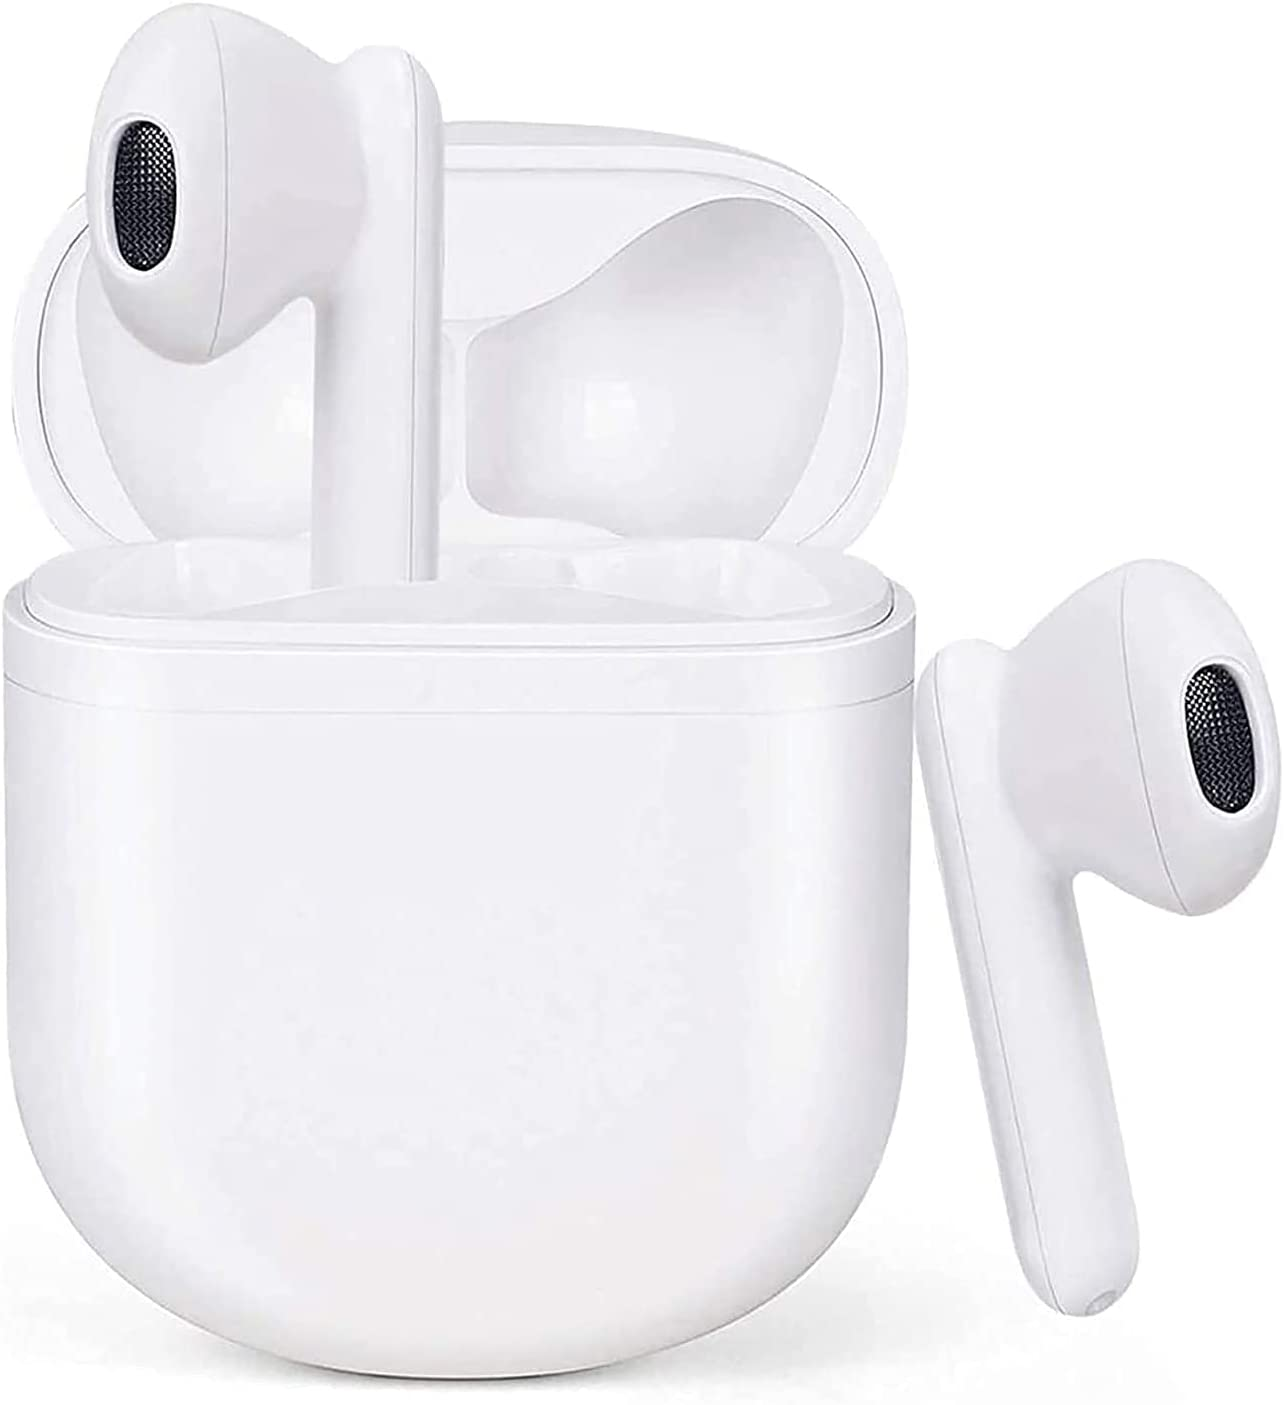 Wireless Earbuds Air podswireless Bluetooth 5.0 Earbuds 3D Stereo Air Buds Headphones IPX5 Waterproof Built-in Mic in Ear Buds 24 Hrs Play Time Sport Headset Earphone for iPhone/Android/Samsung Earbud